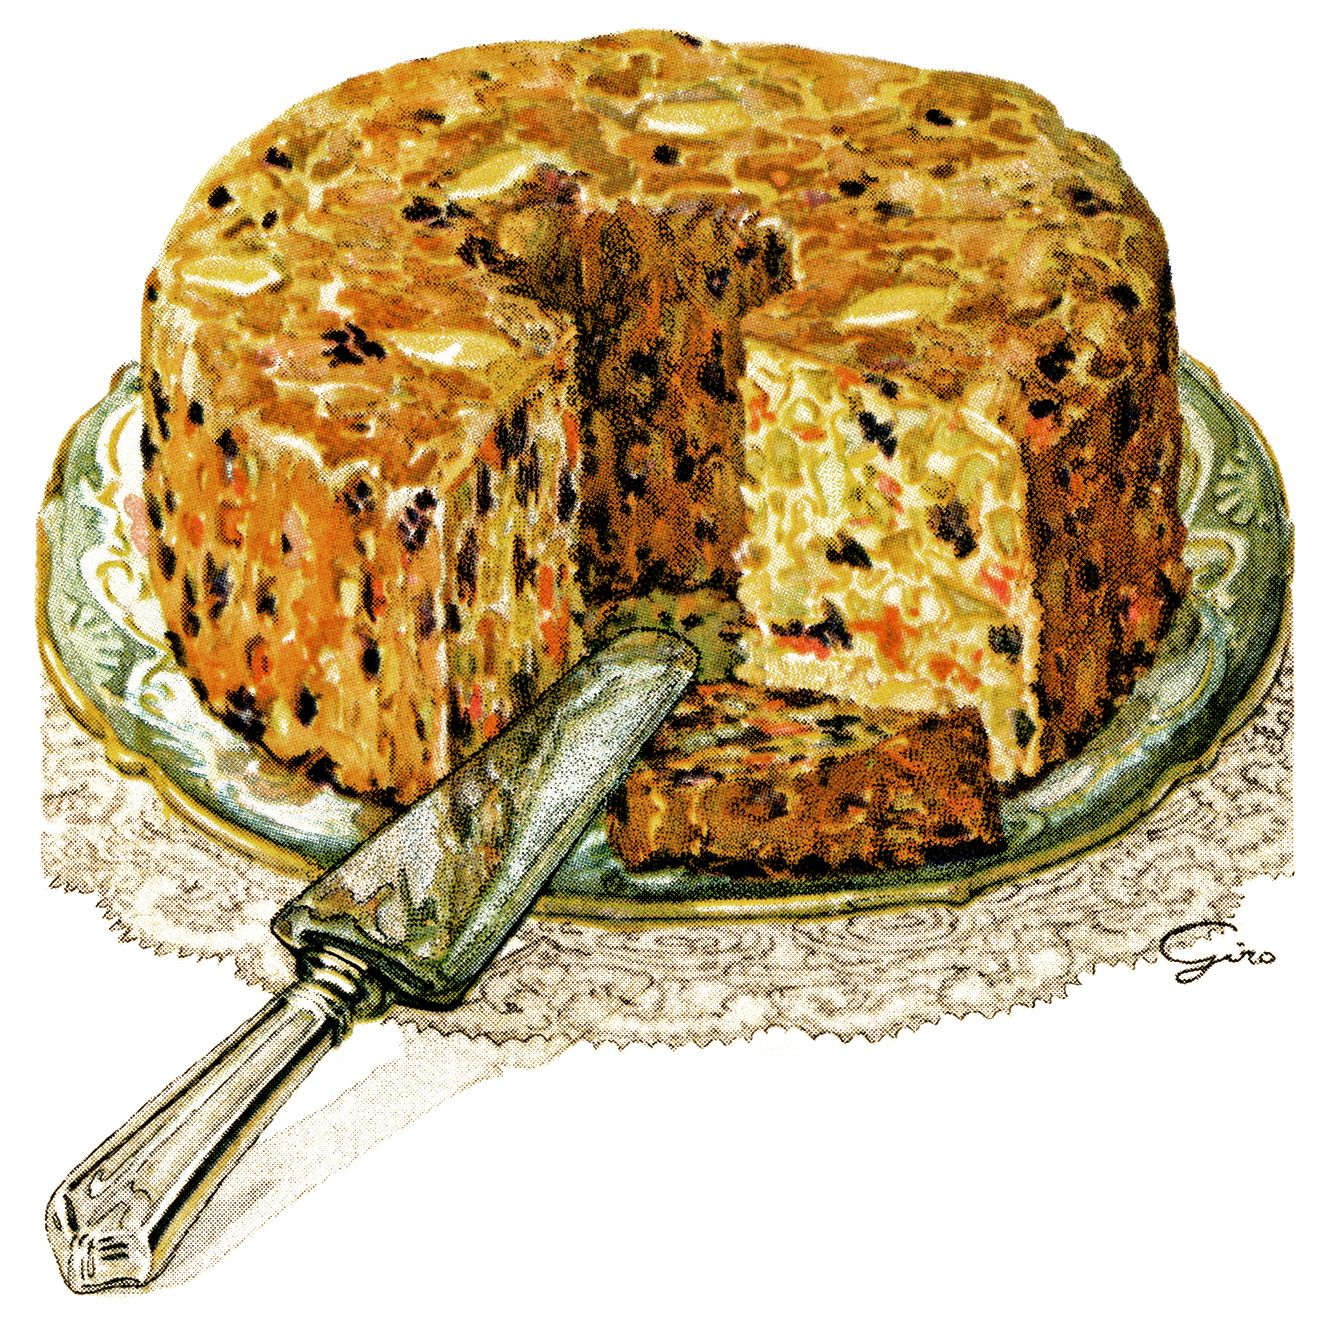 White Fruit Cake Illustration Free Vintage Graphics vintage